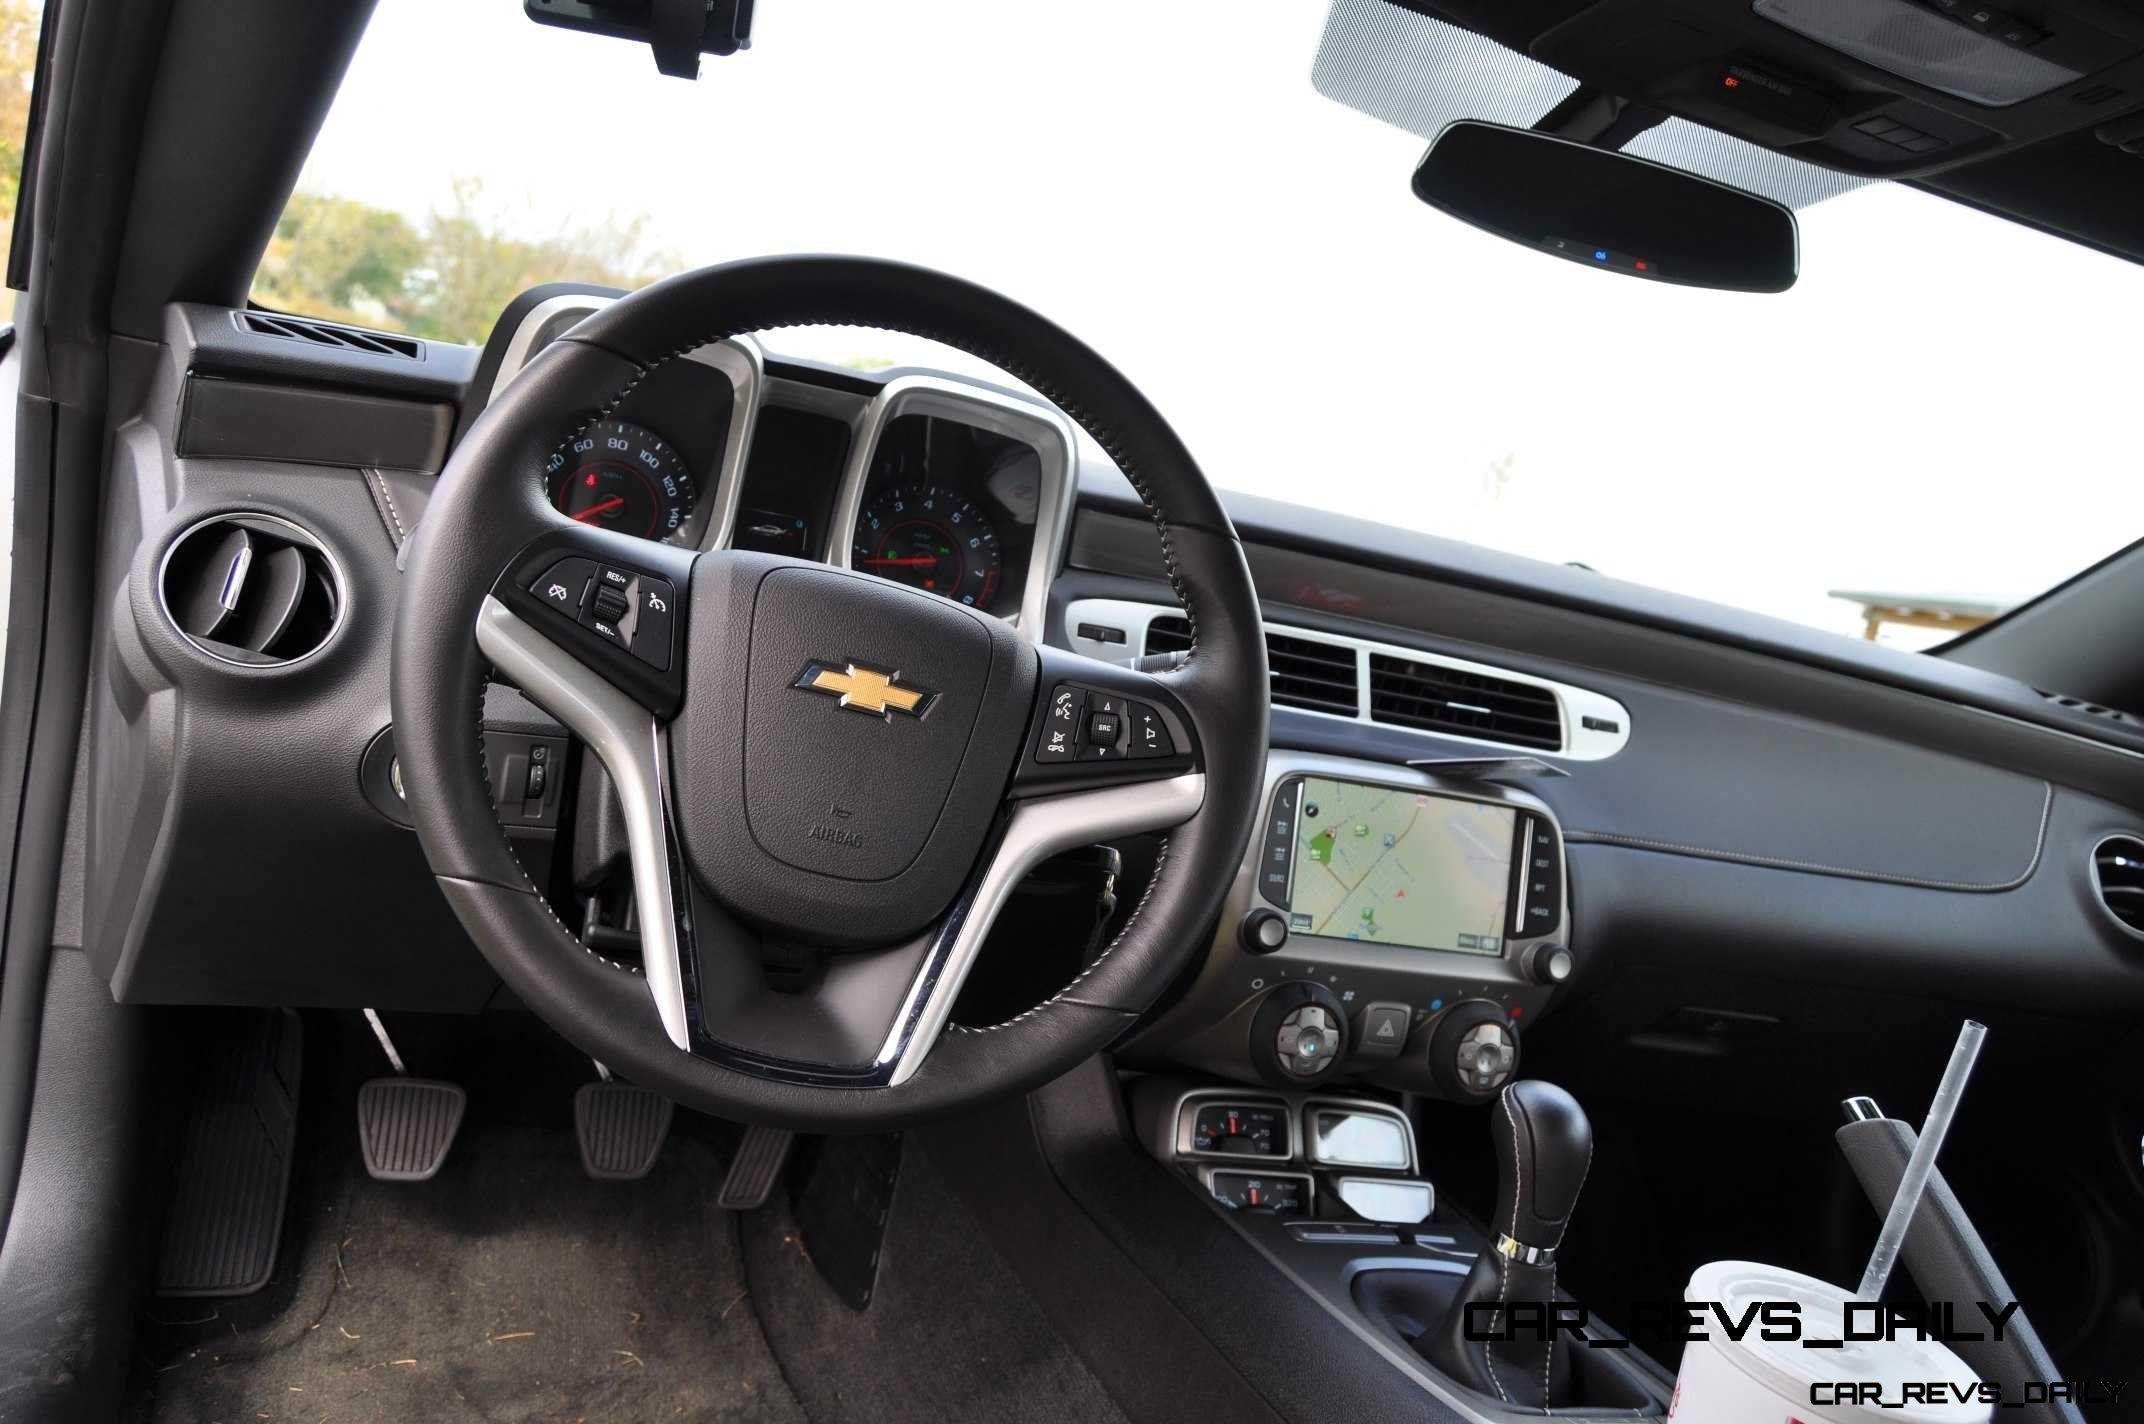 Hd Video Reviews 2014 Chevy Camaro 2lt Rs With New Led Lights And Active Exhaust Car Revs